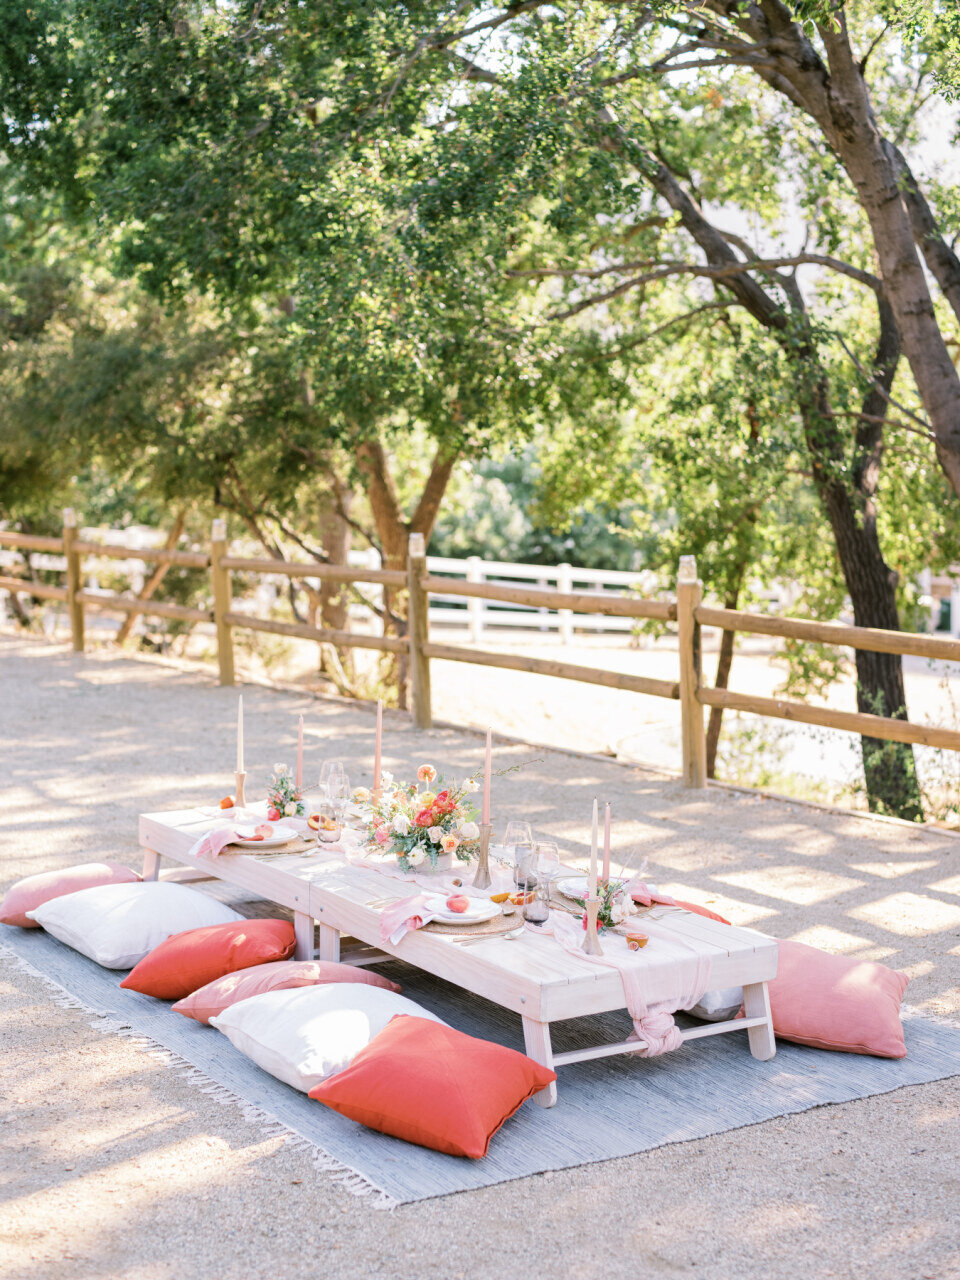 Peach_Tablescape_Picnic_Wedding_Malibu